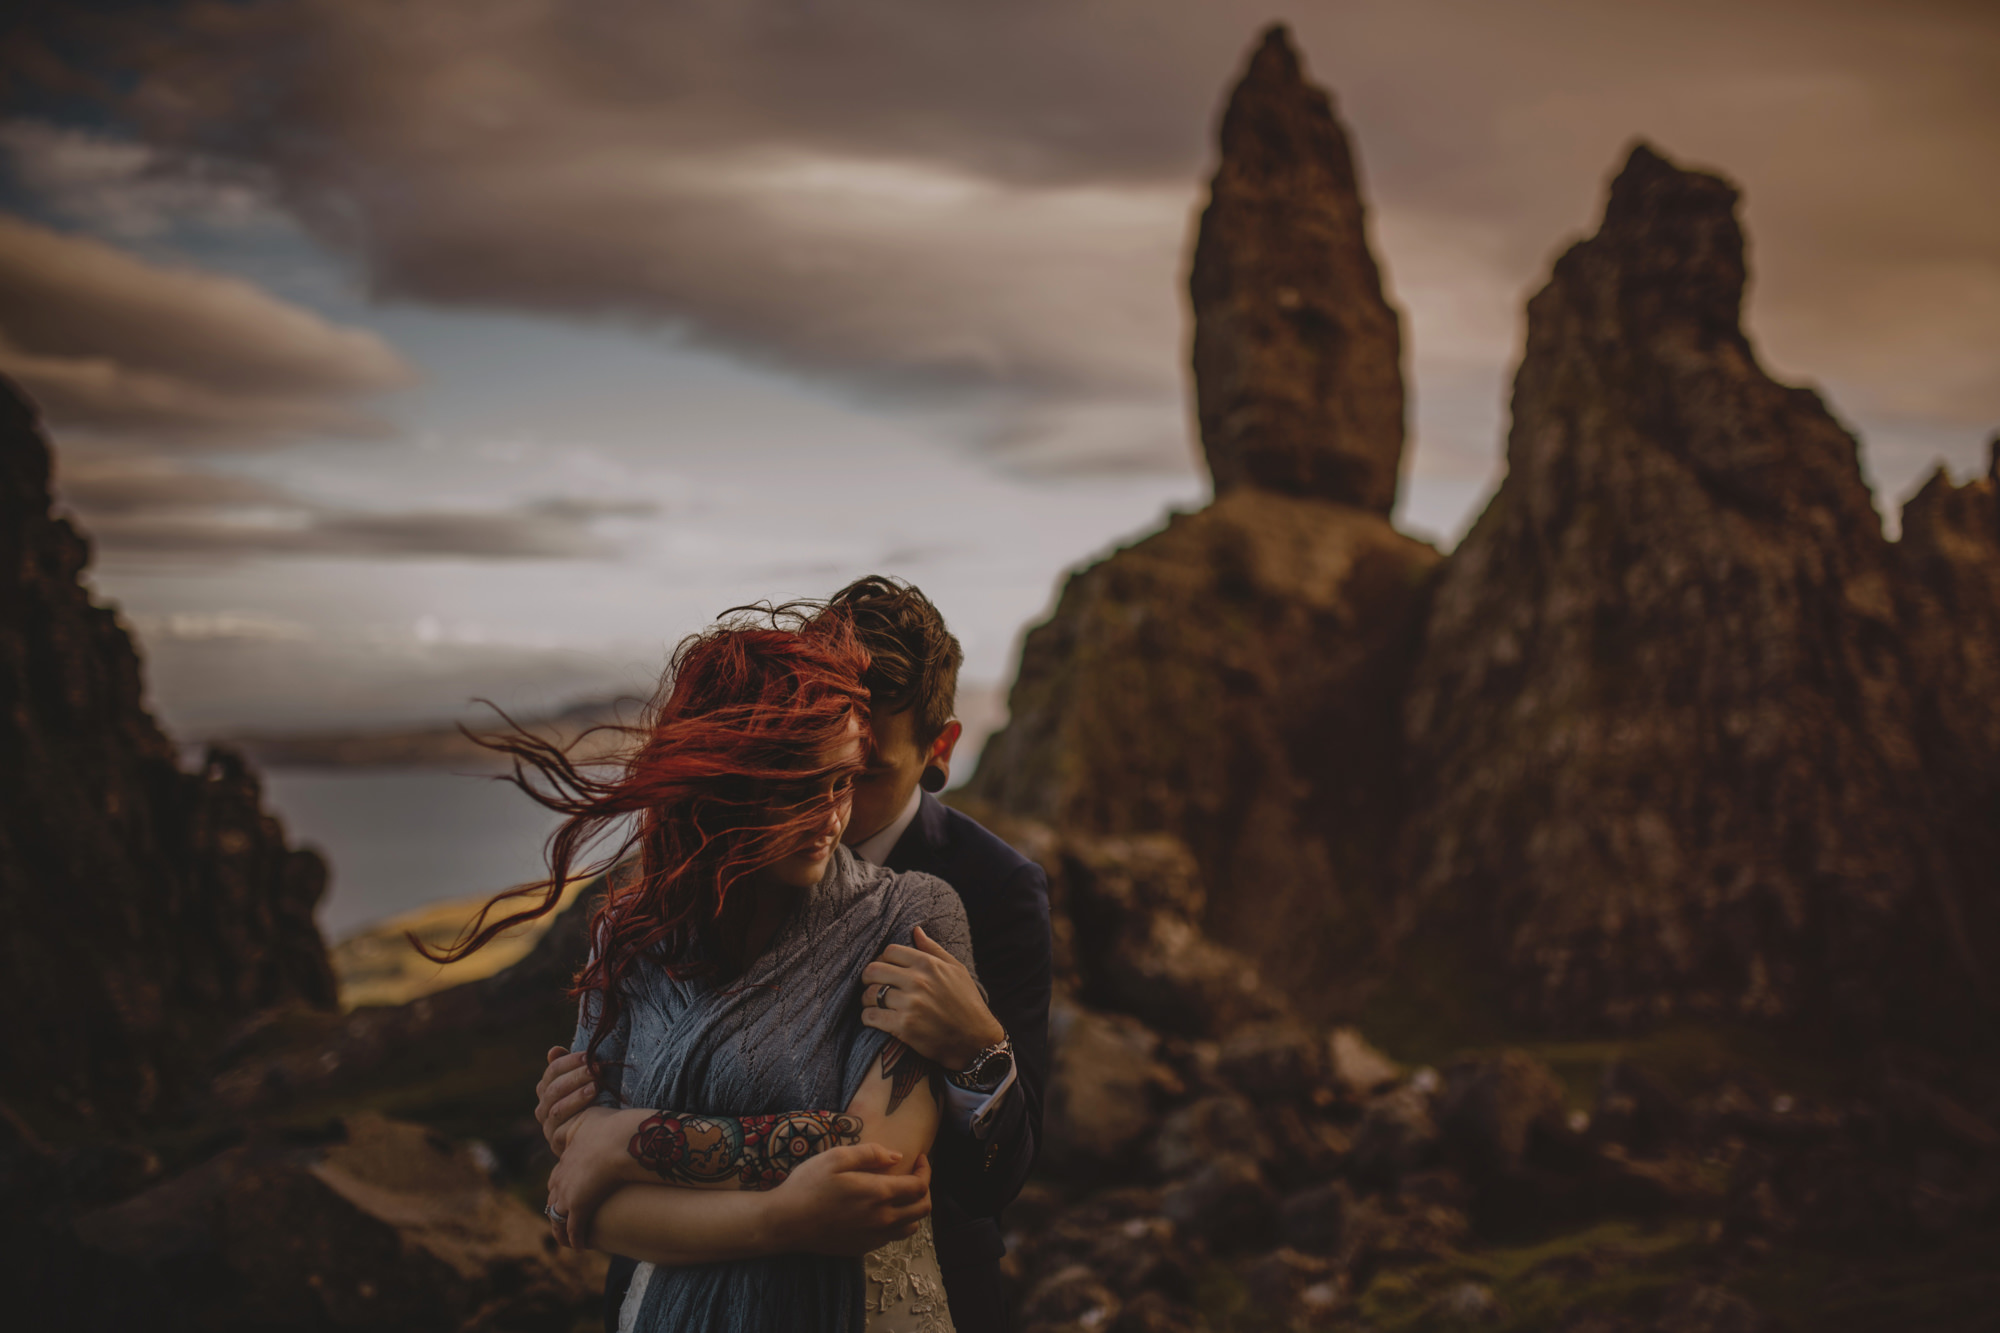 engagement-portrait-red-haired-woman-with-tattoos-worlds-best-wedding-photos-gabe-mcclintock-calgary-wedding-photographer